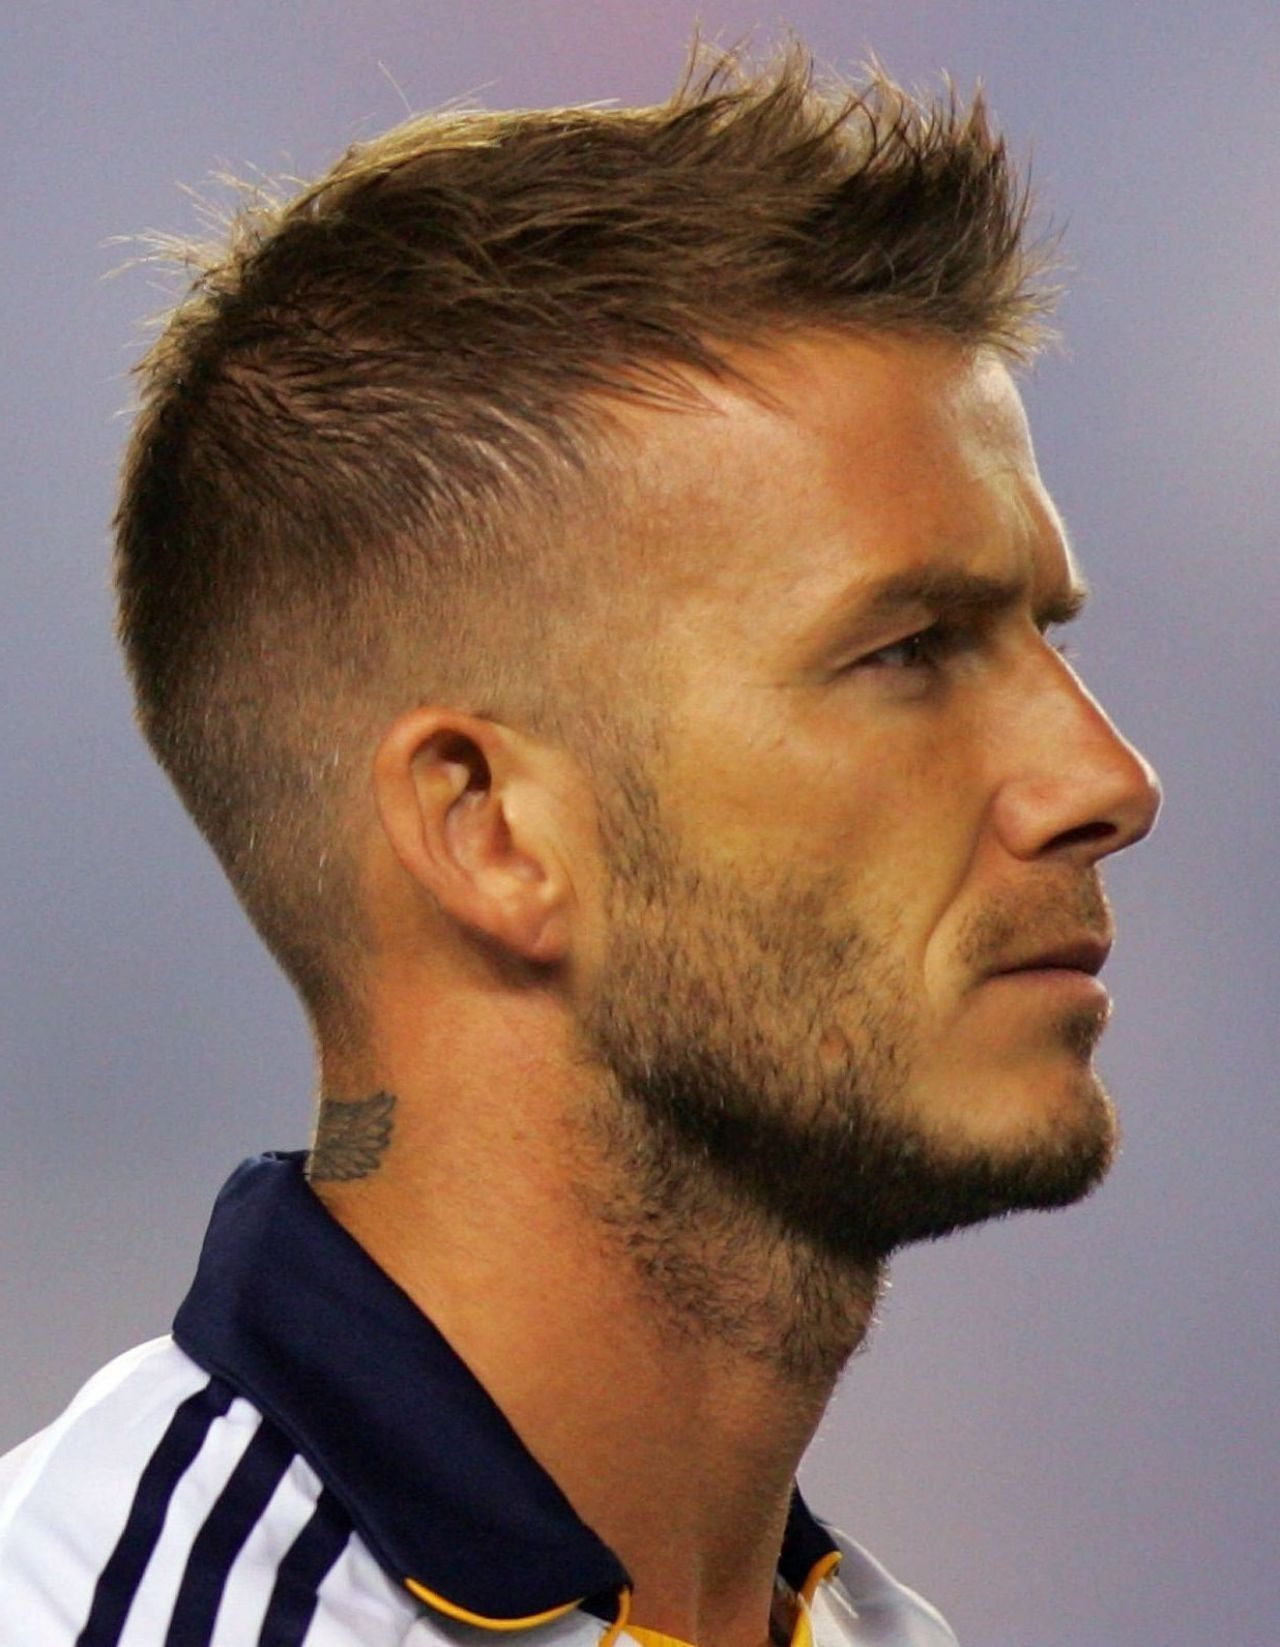 haircuts-for-men-with-thin-hair-haircuts-for-men | For the Husband ...